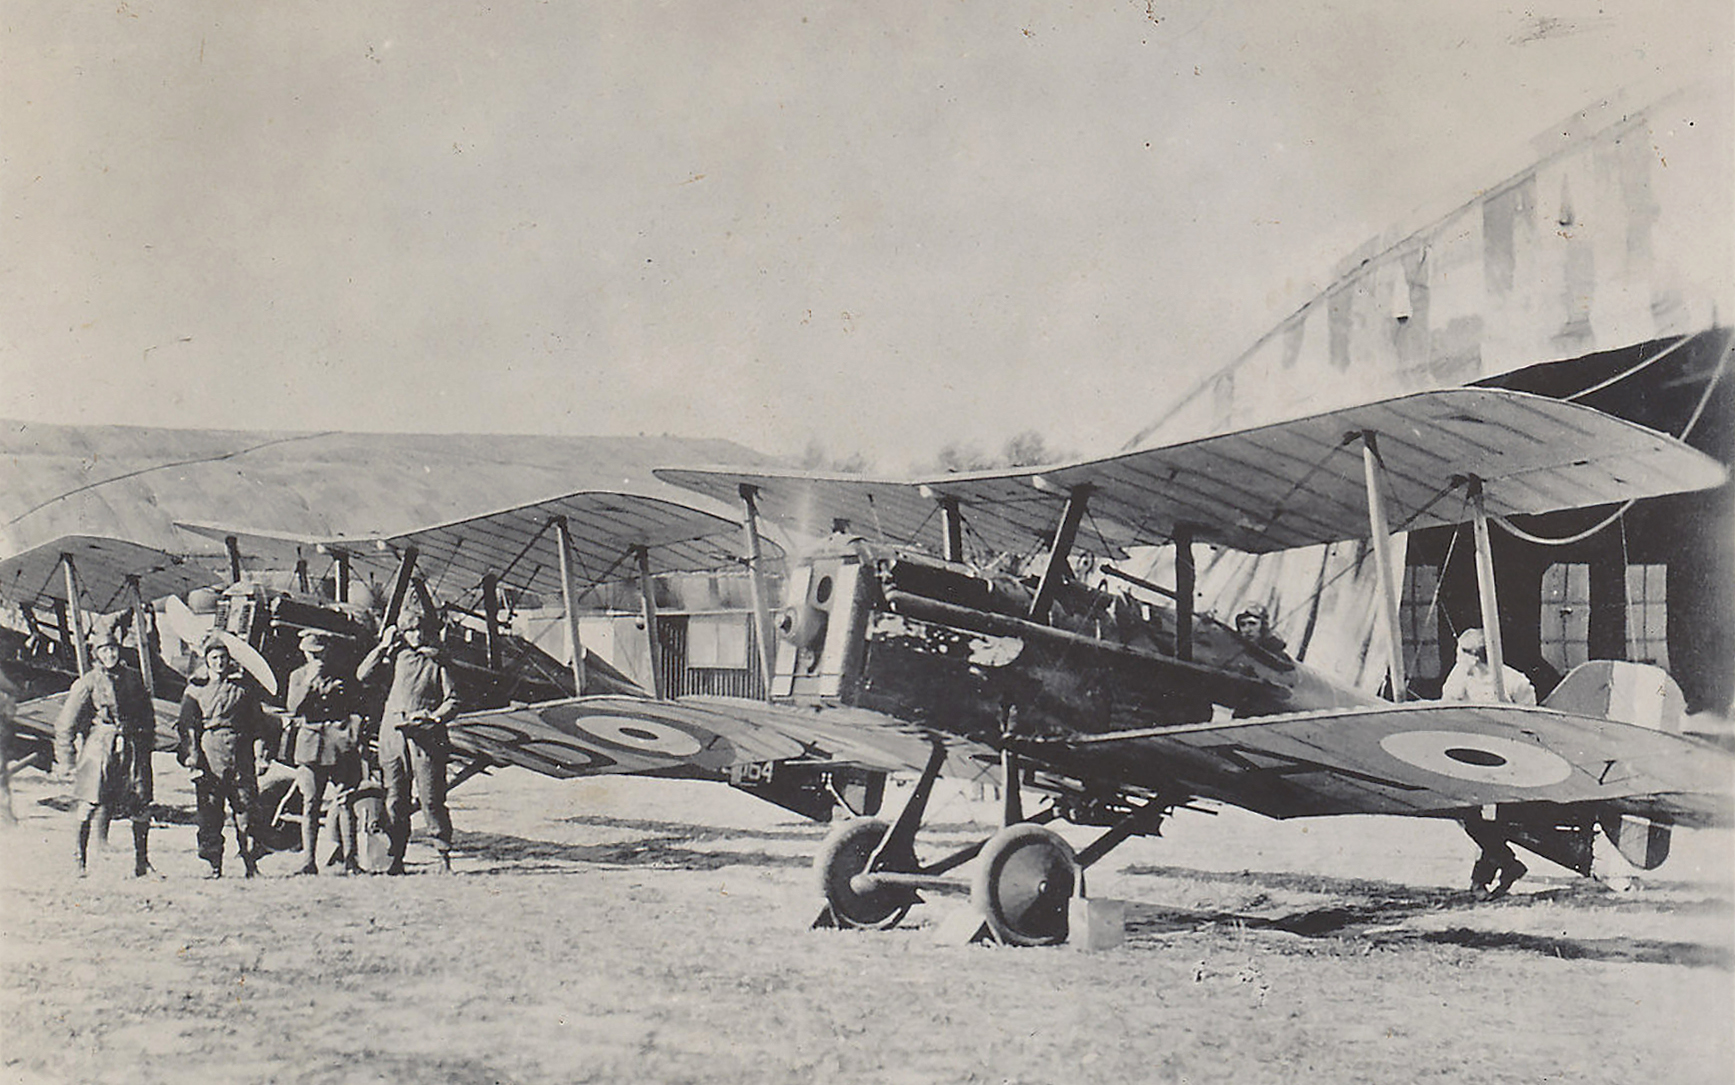 Three vintage bi-planes sit in front of old buildings, with five men standing around one aircraft with a pilot in the cockpit.